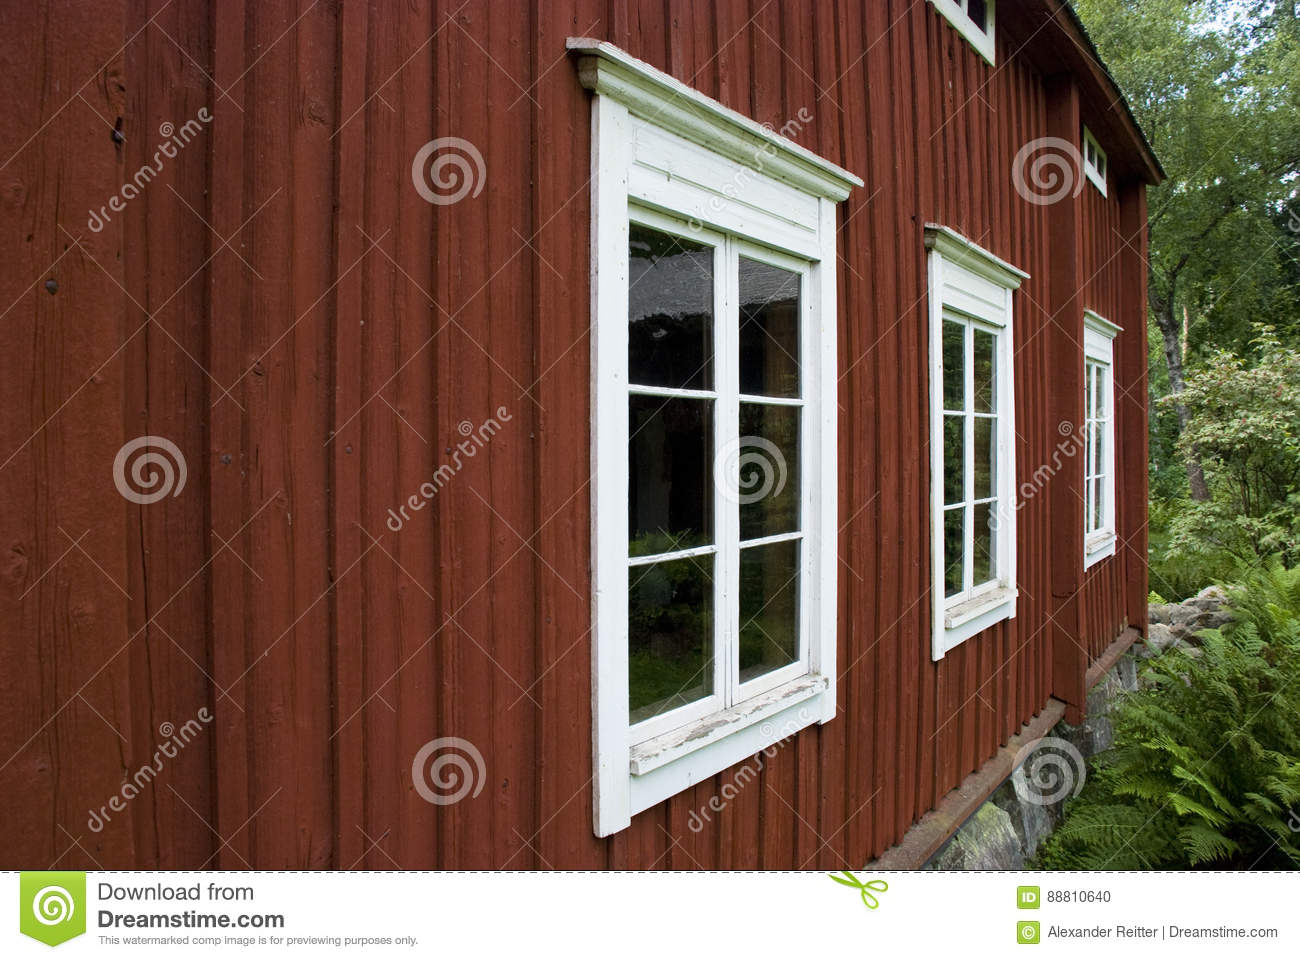 Windows for a wooden house 59